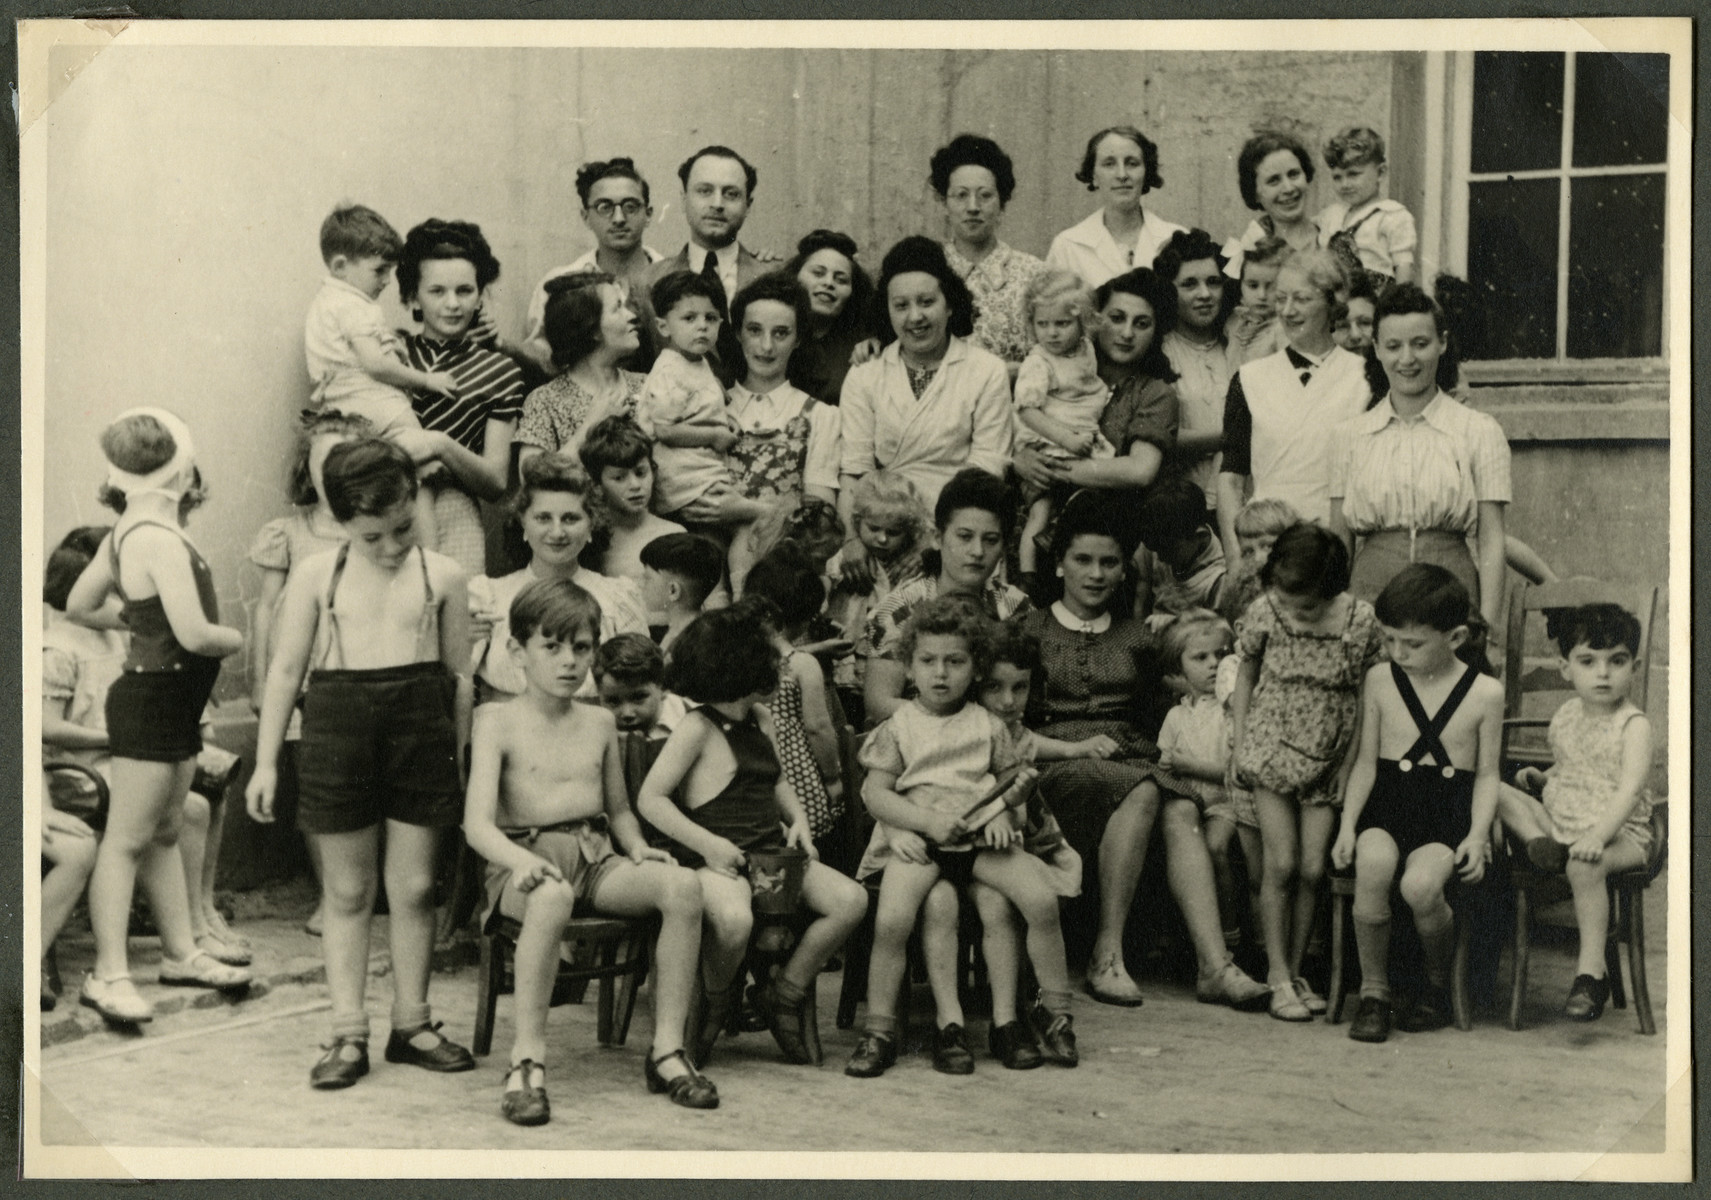 Group portrait of the young children in one of the schools organized by Fela Perelman [probably Nos Petits].